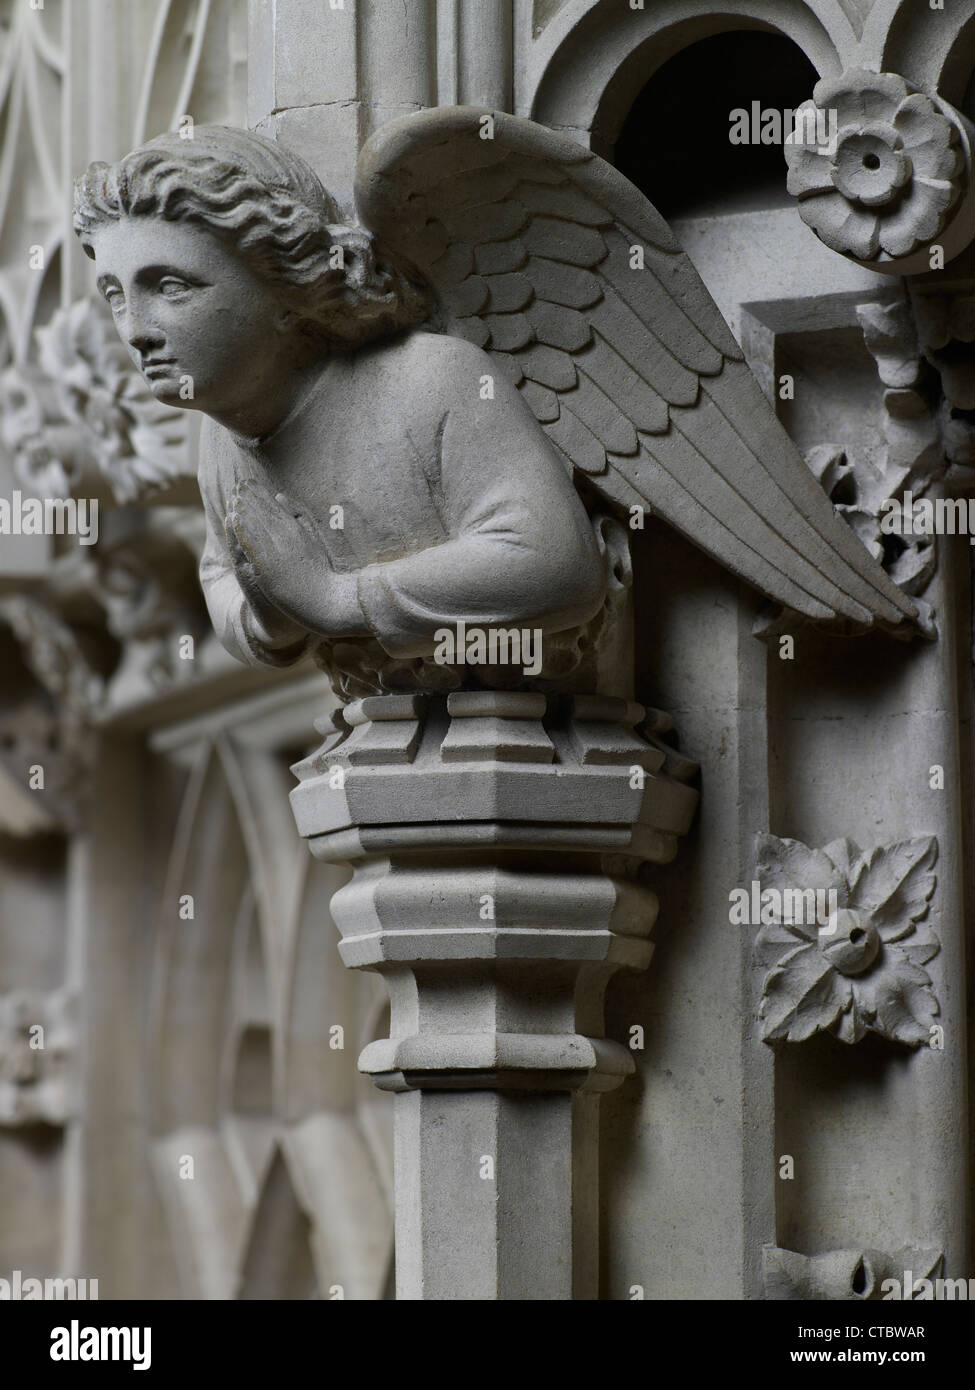 Tewkesbury Abbey stone carving of angel on pulpit, 1897 - Stock Image